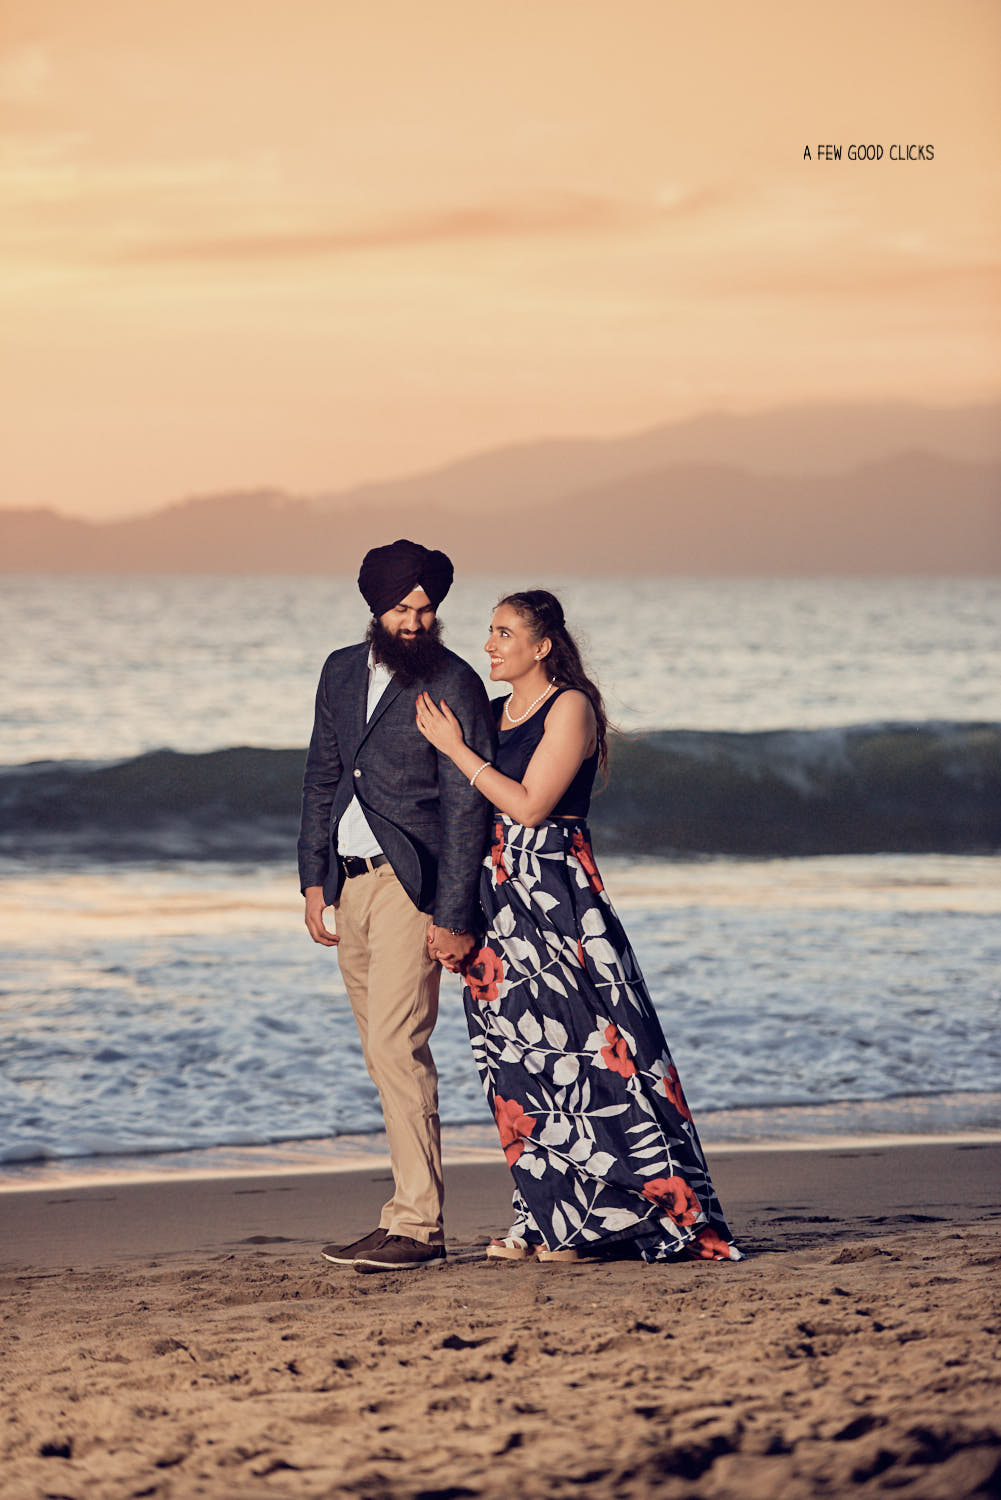 bakers-beach-engagement-session-photography-san-francisco 14.jpg